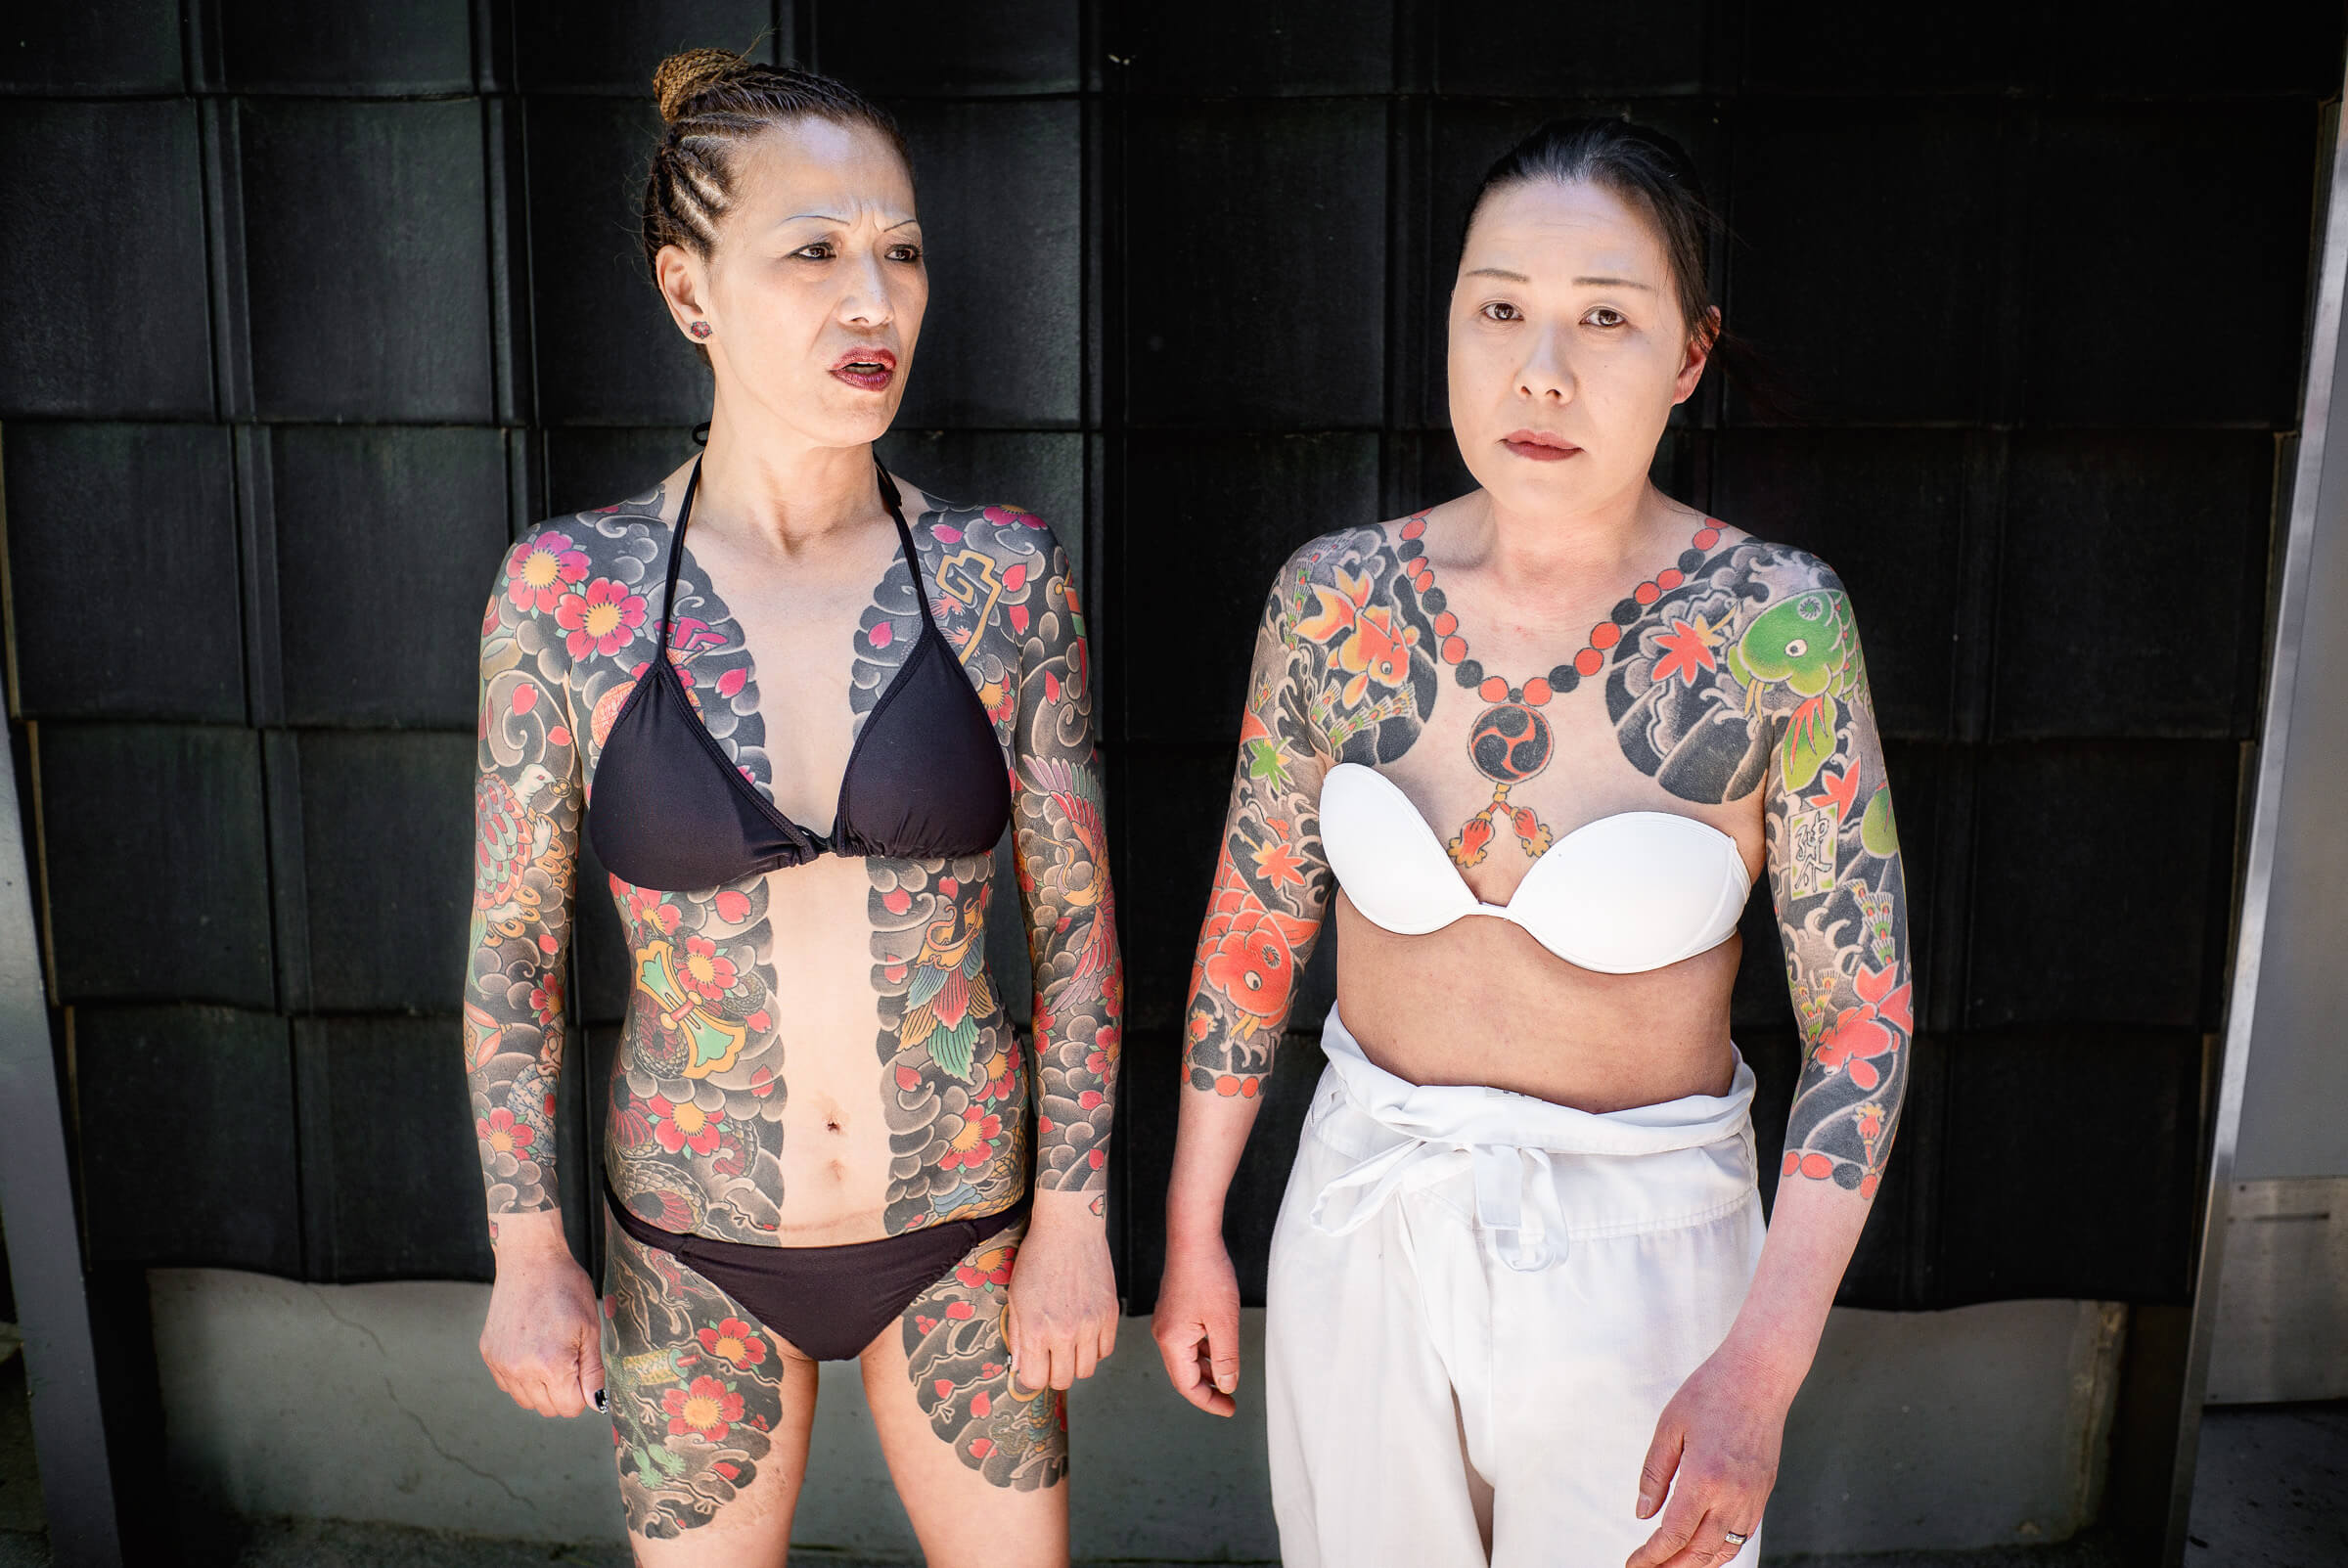 japanese women with traditional tattoos \u2014 tokyo times